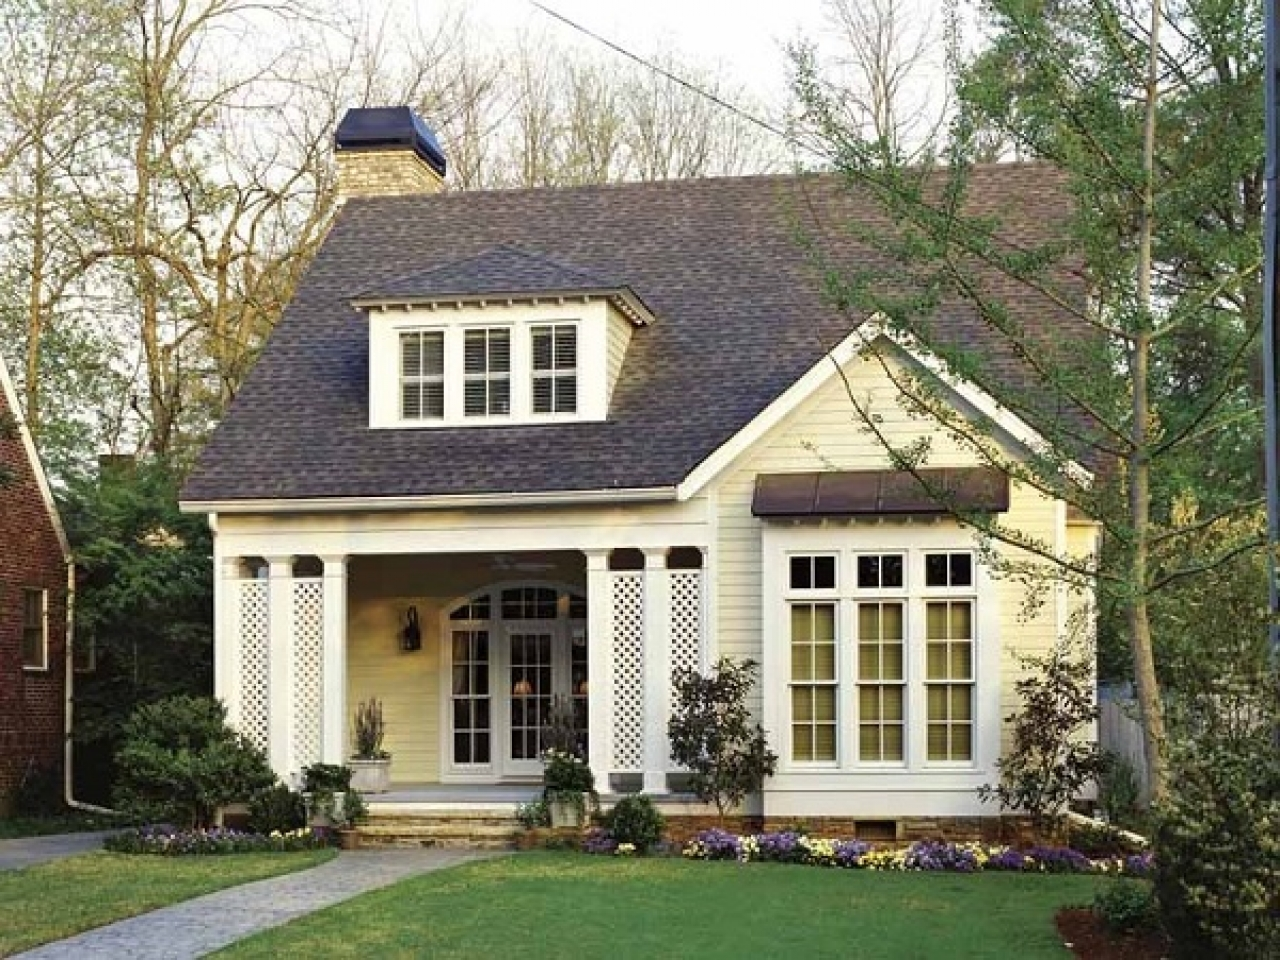 Small cottage house plans small country house plans small Small bungalow home plans